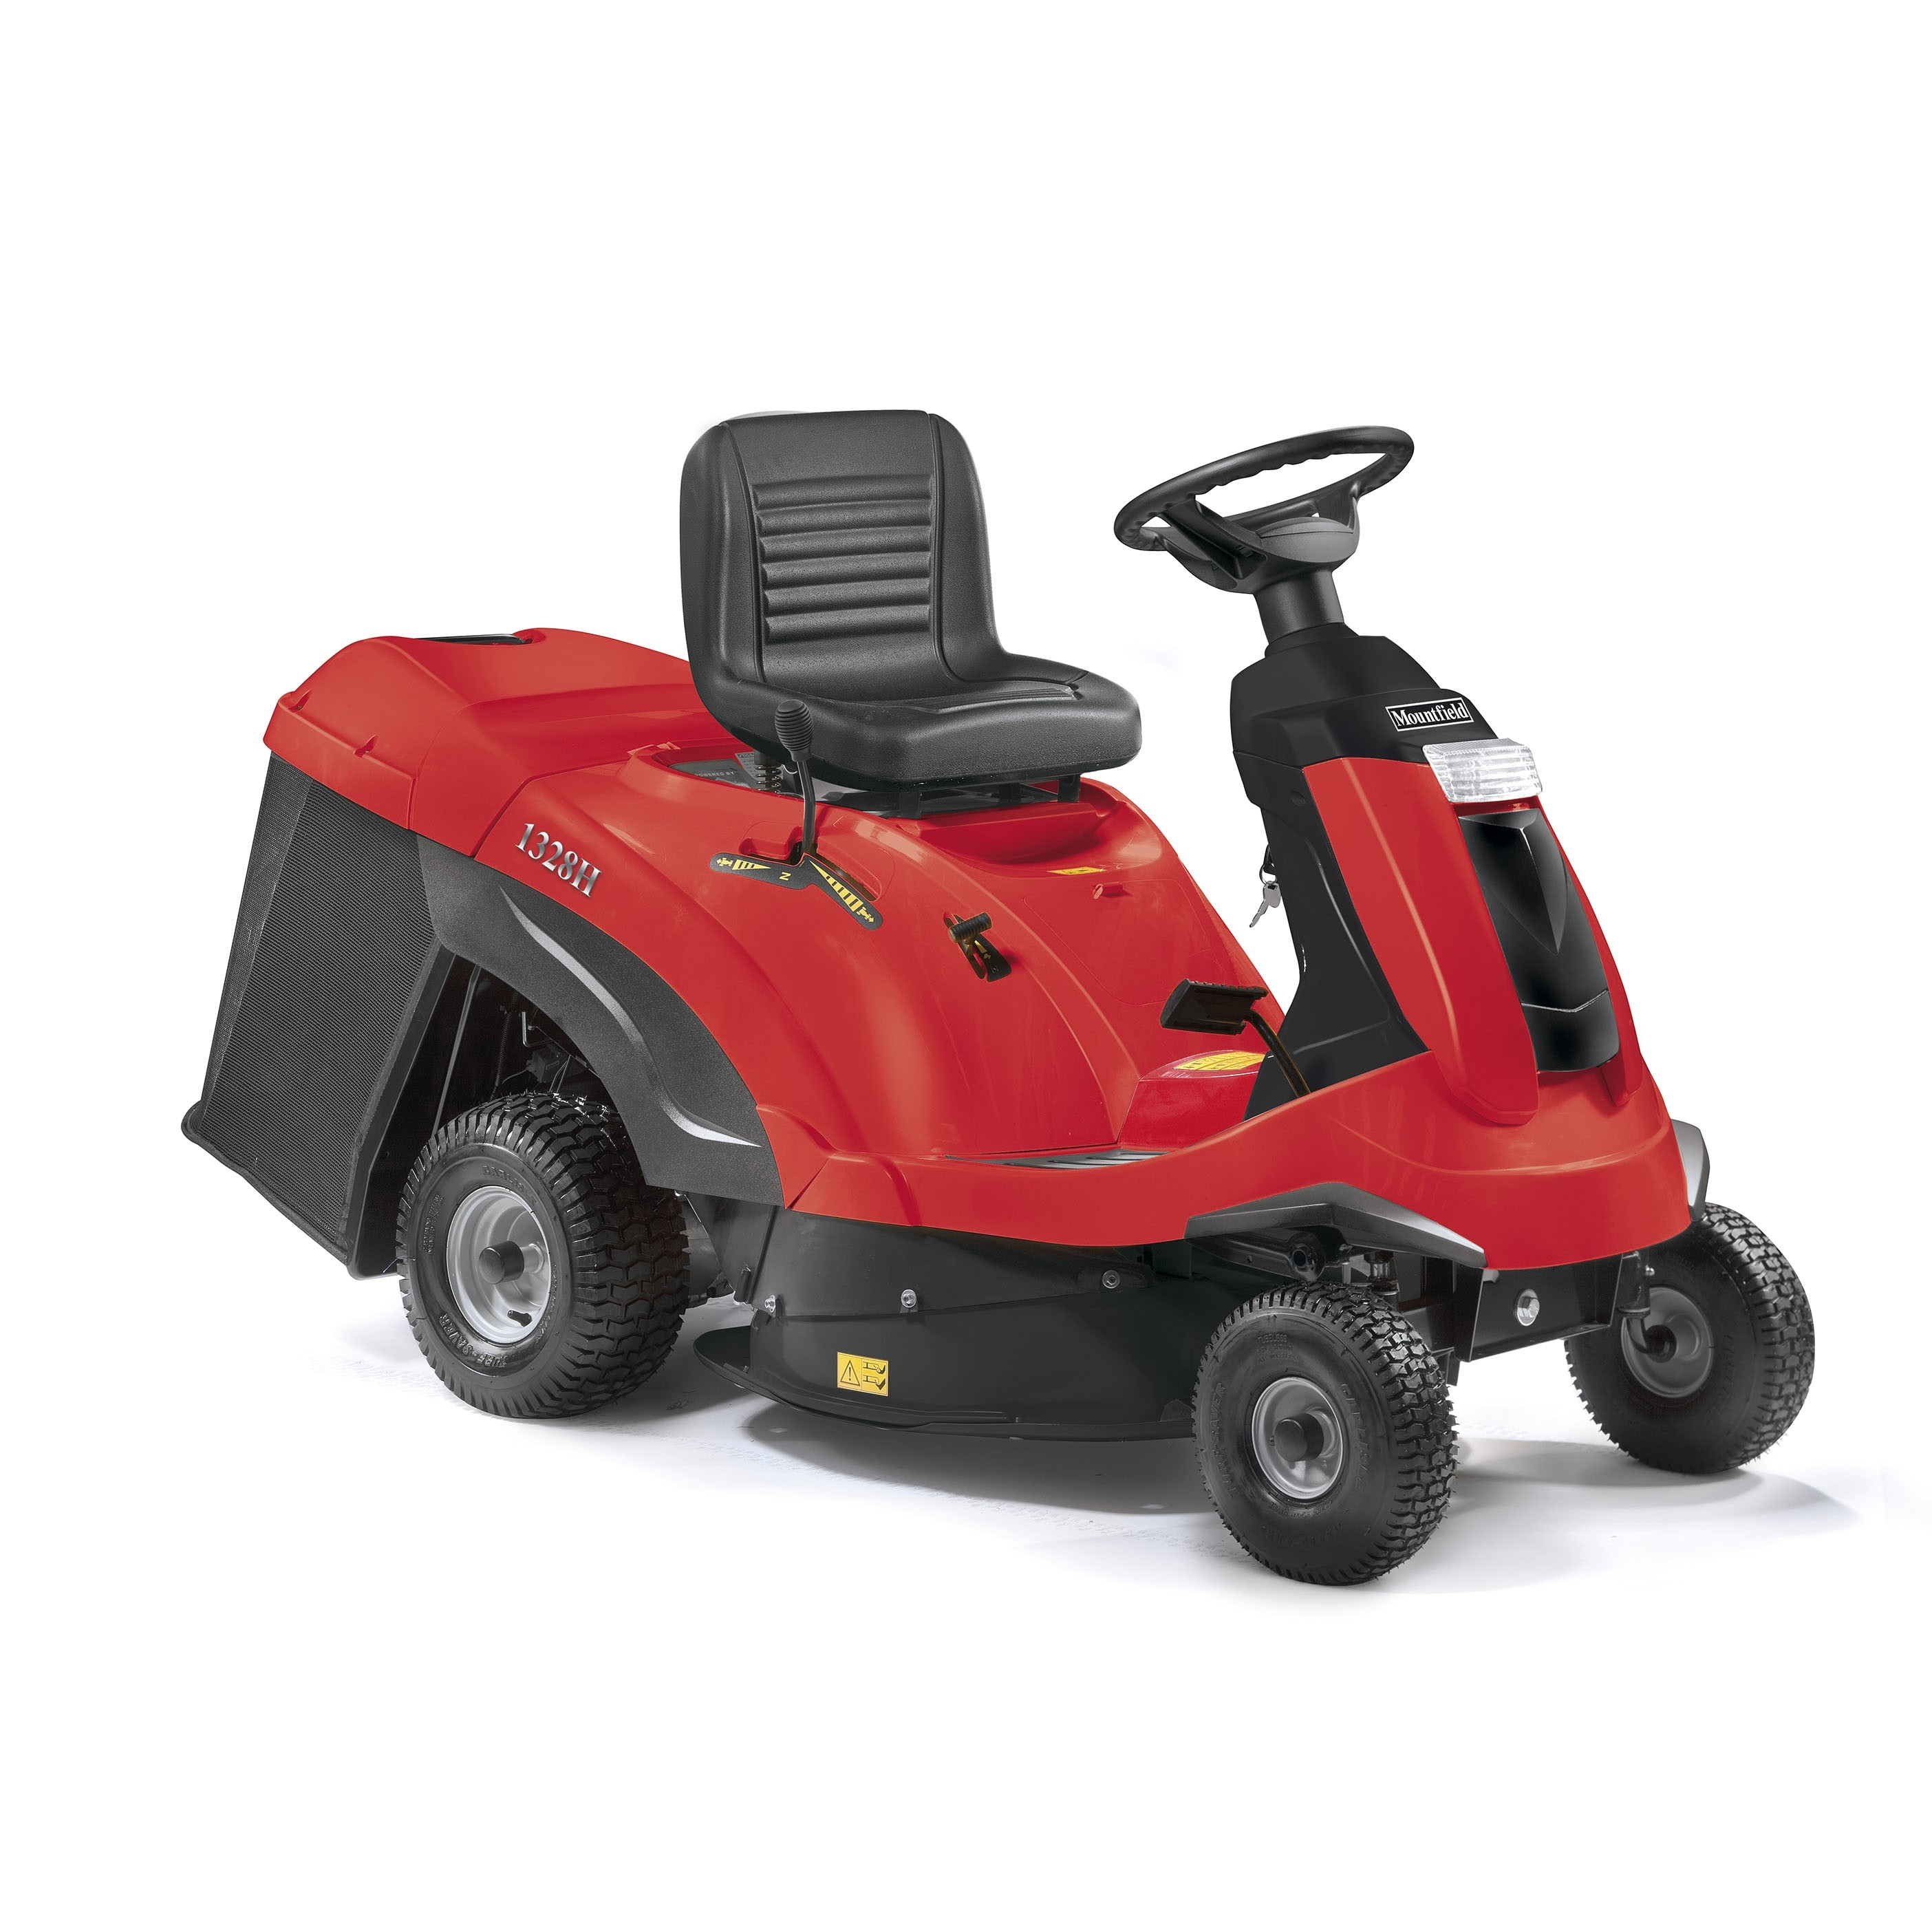 Mountfield 1328H Rider mower